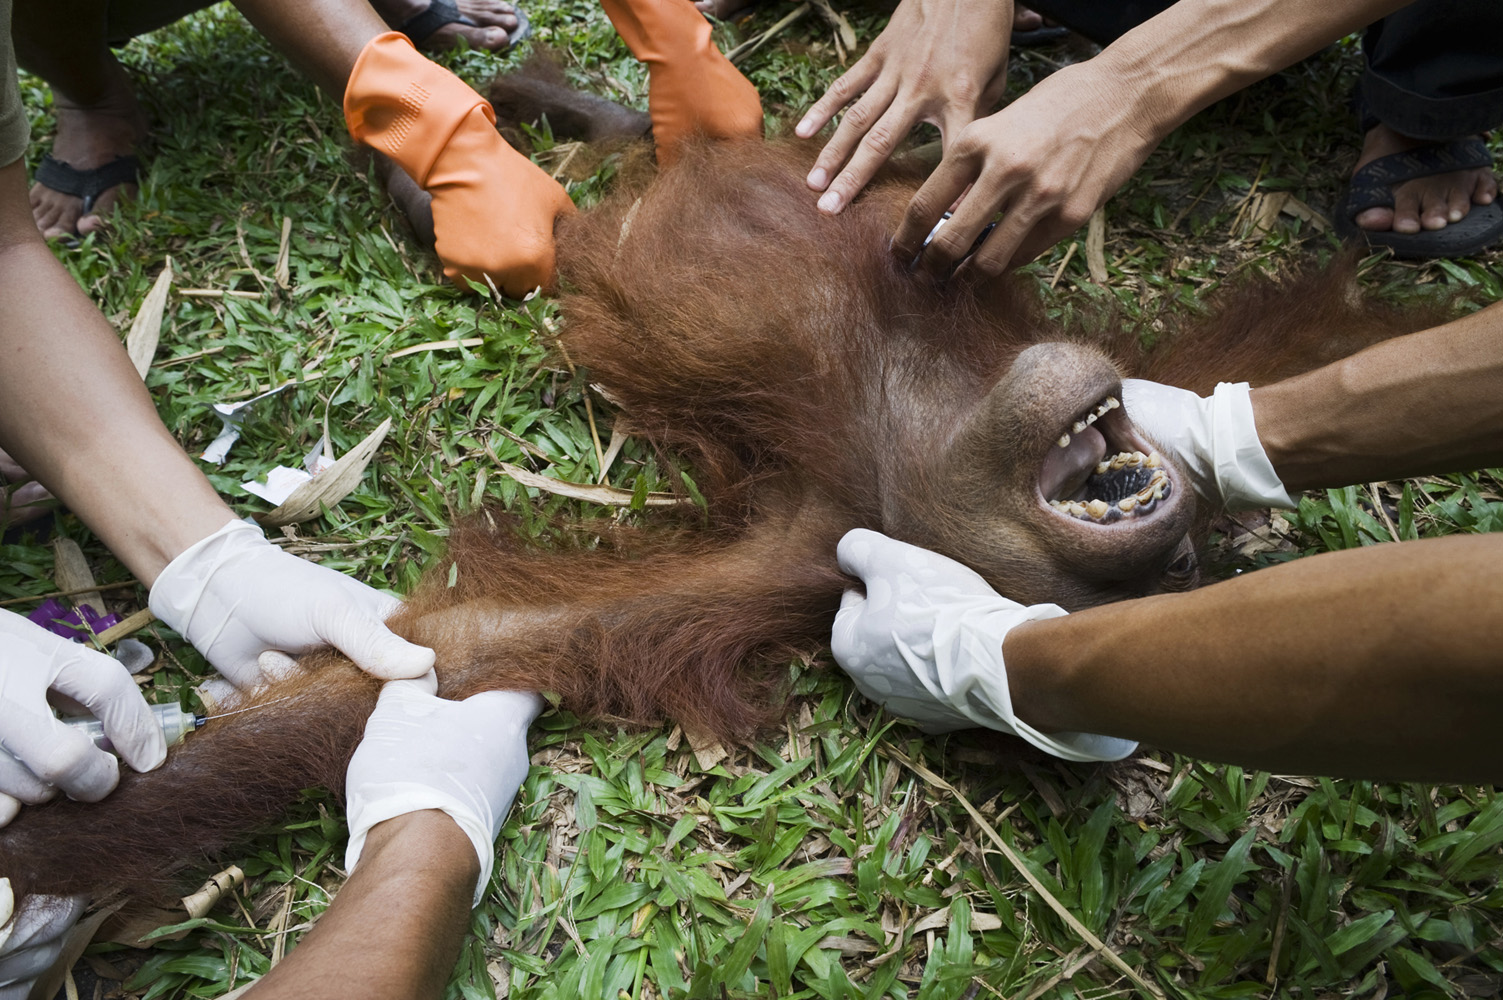 Kalimantan, Borneo, IndonesiaYoung Orangutan found wounded with both legs broken. Many orangutans are being killed and hurt due to the Palm Oil exploration on Borneo.